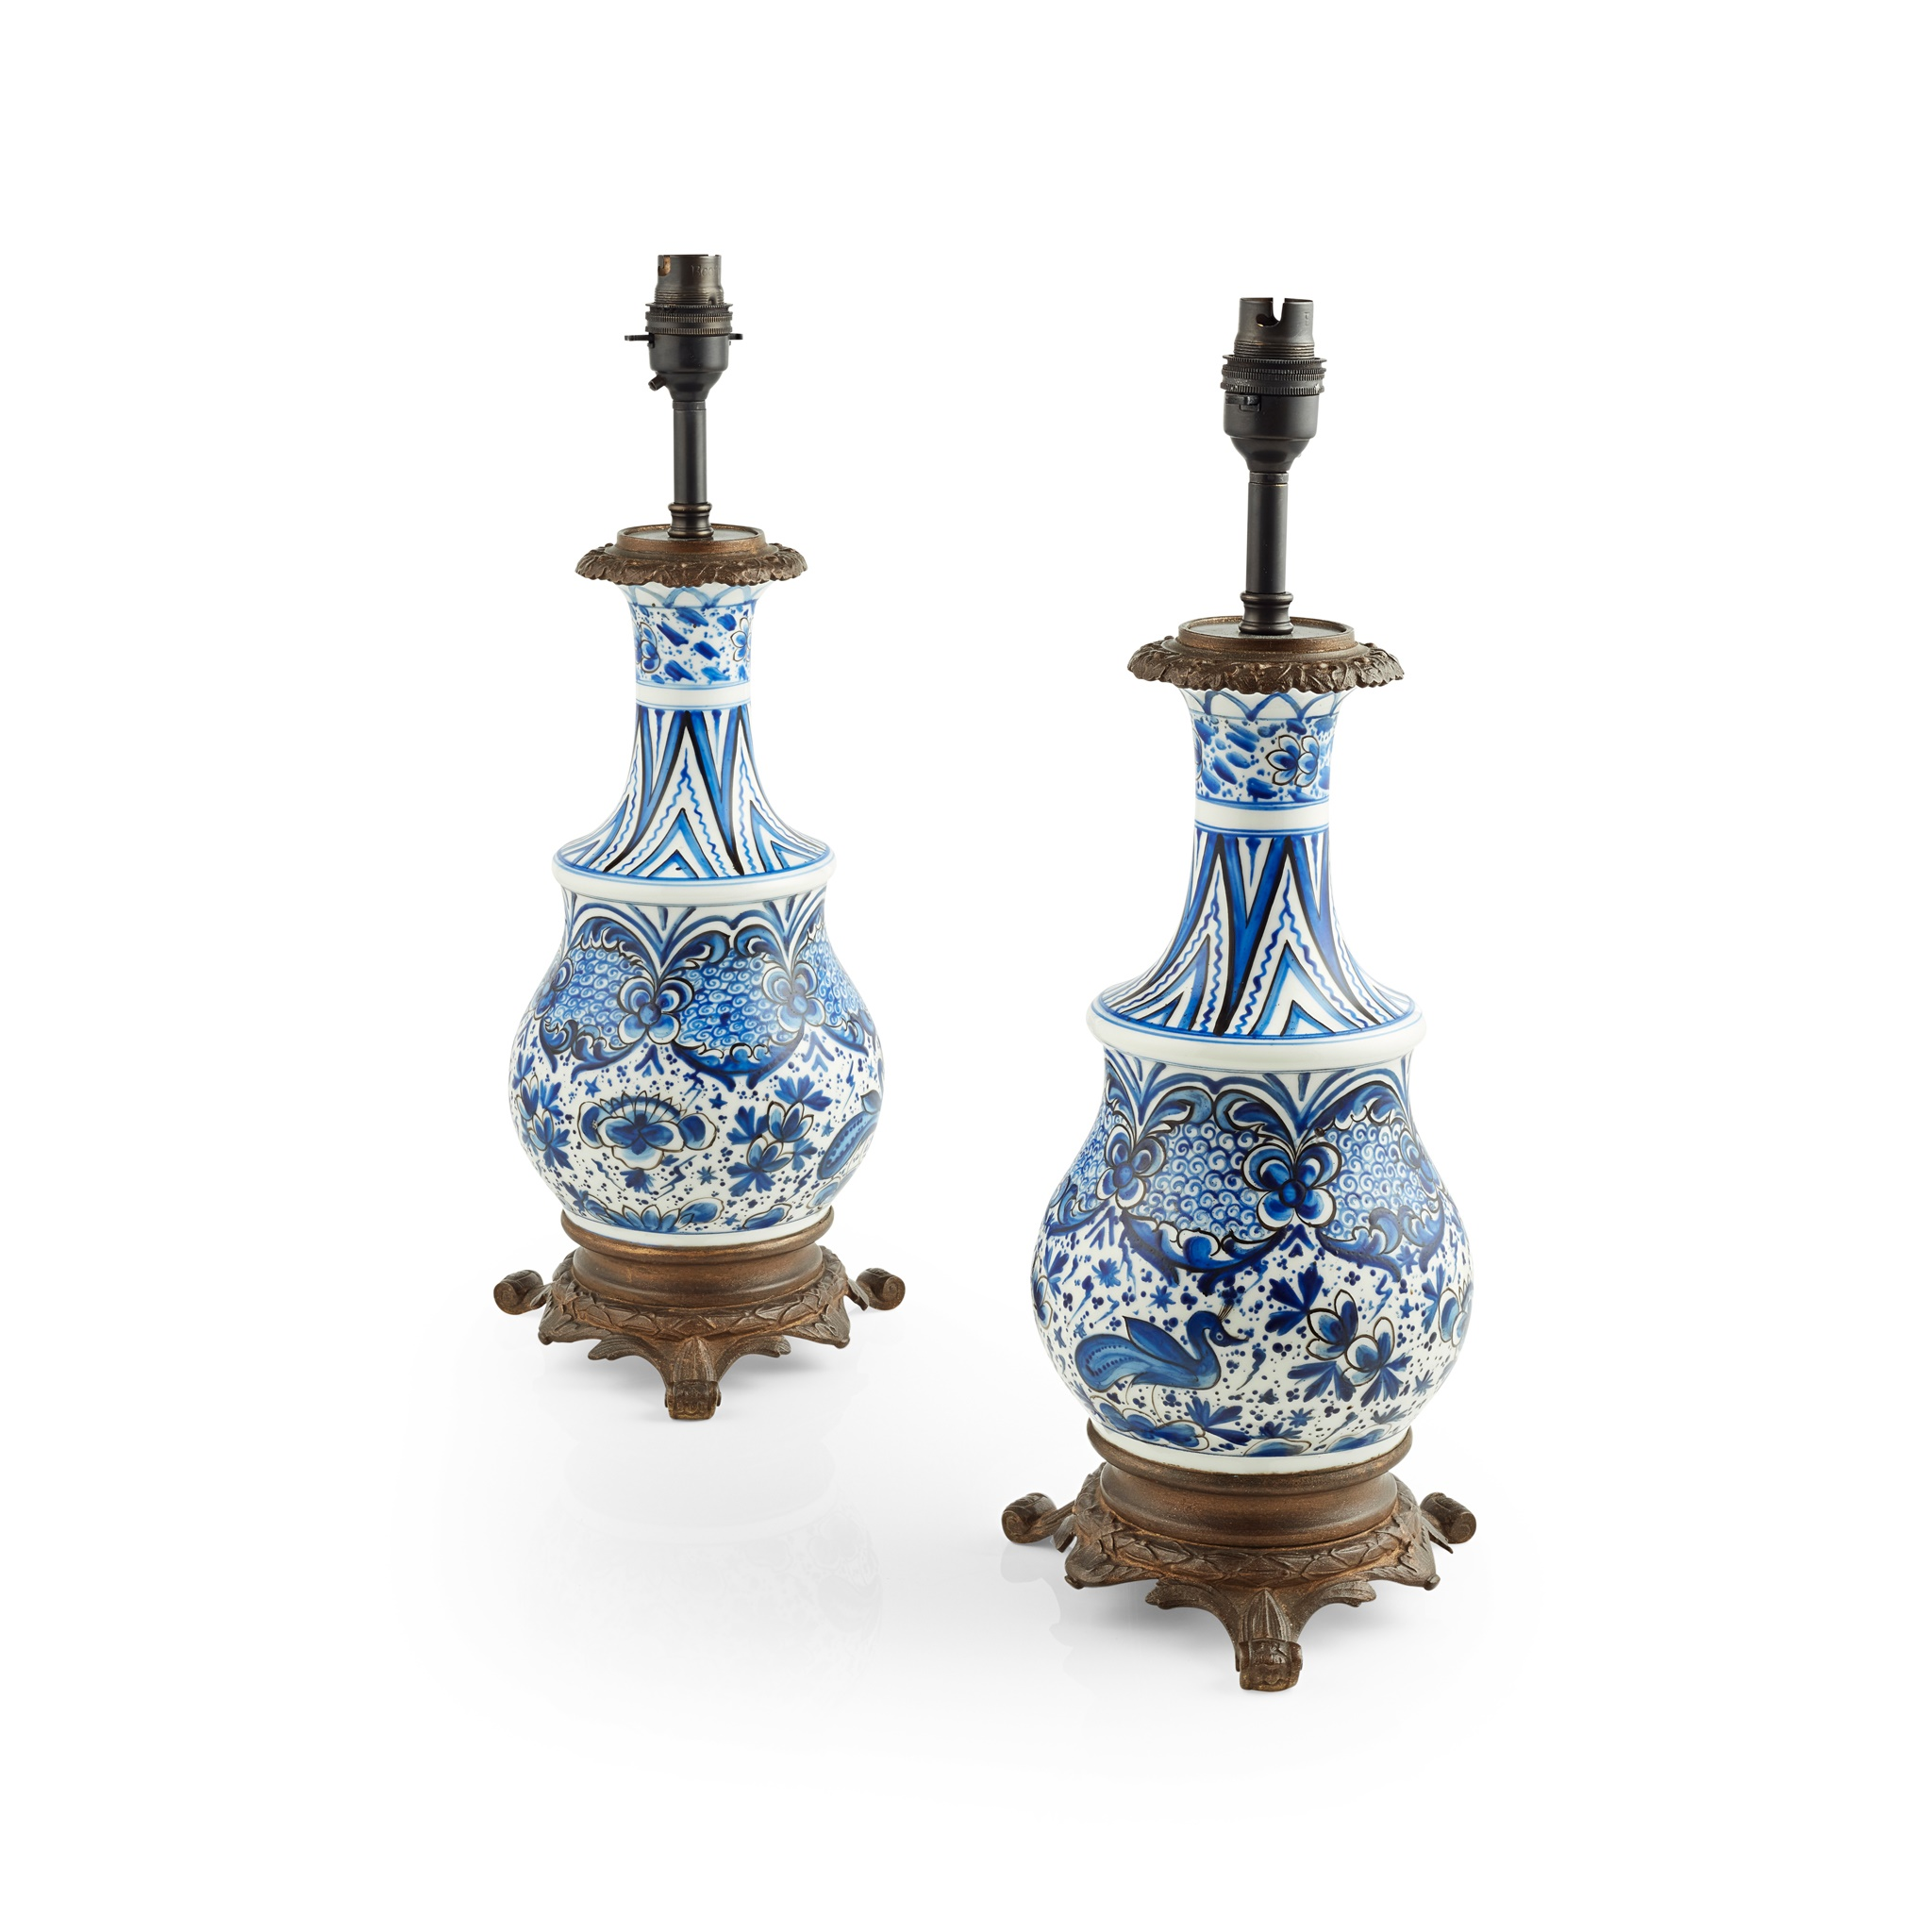 PAIR OF IZNIK TYPE PORCELAIN AND BRONZE BOTTLE VASE LAMPS 19TH/ EARLY 20TH CENTURY - Image 2 of 2